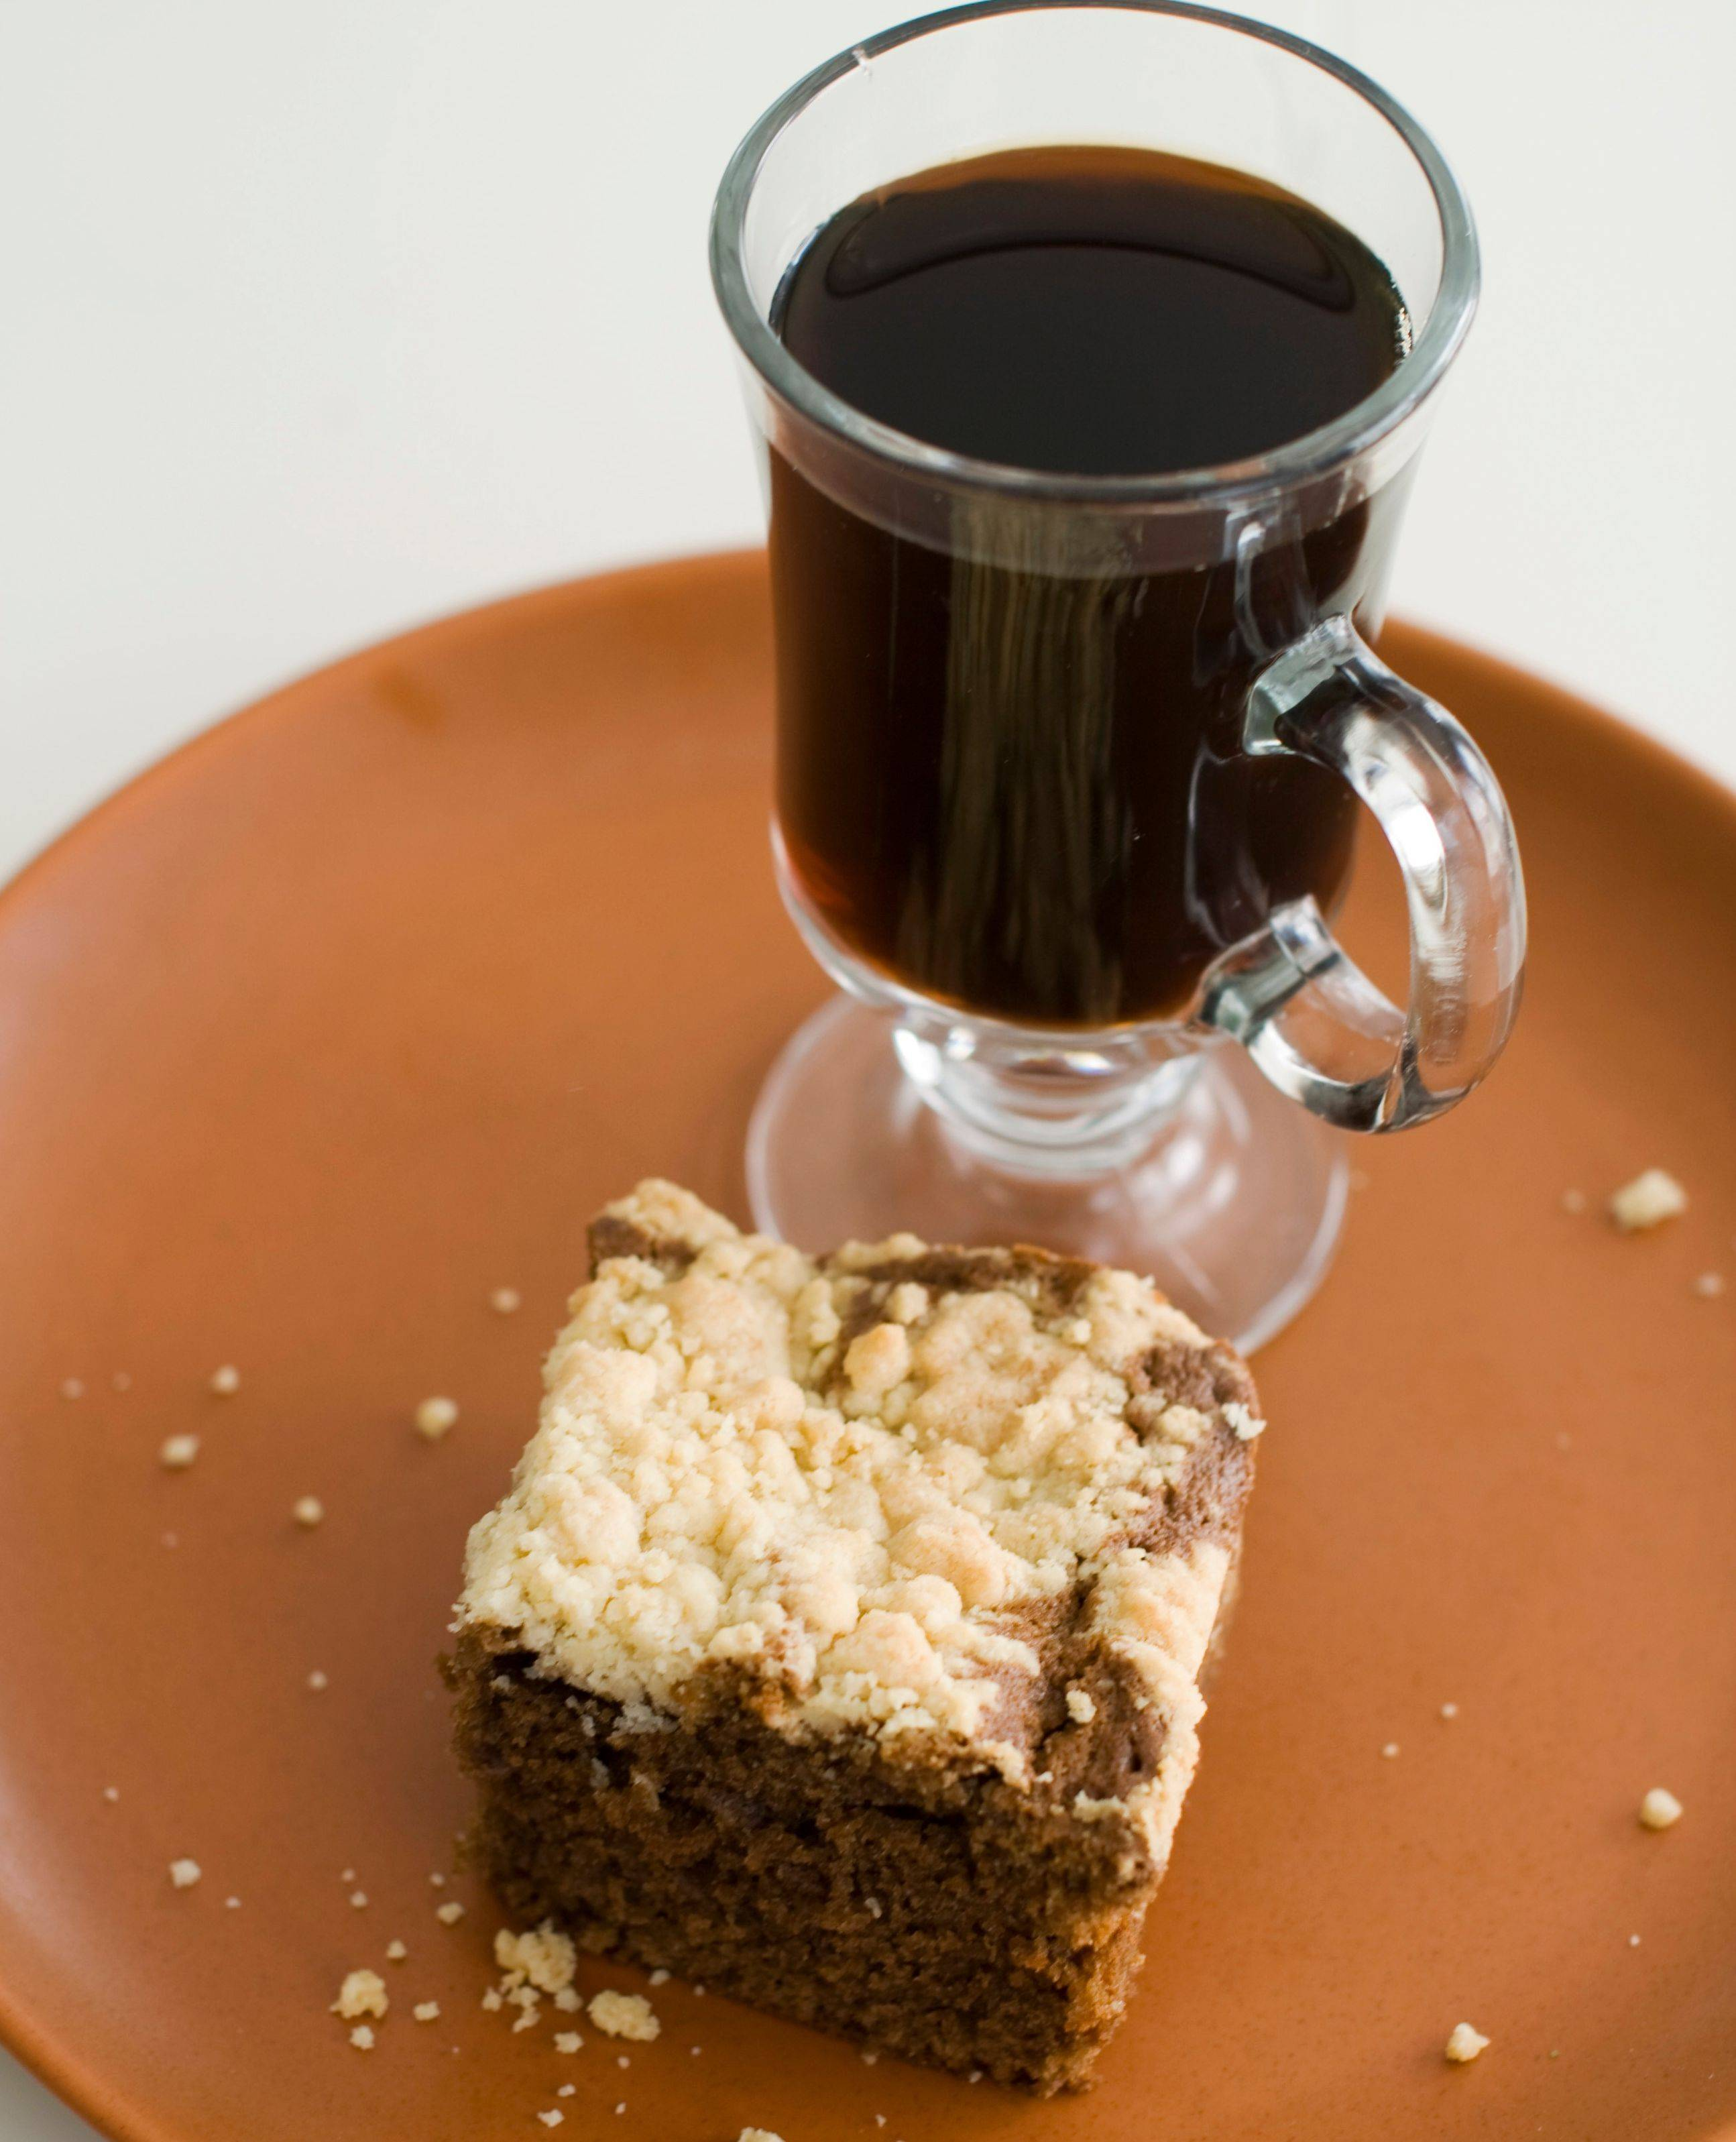 Instant coffee perks up this rich, no-yeast coffee cake.